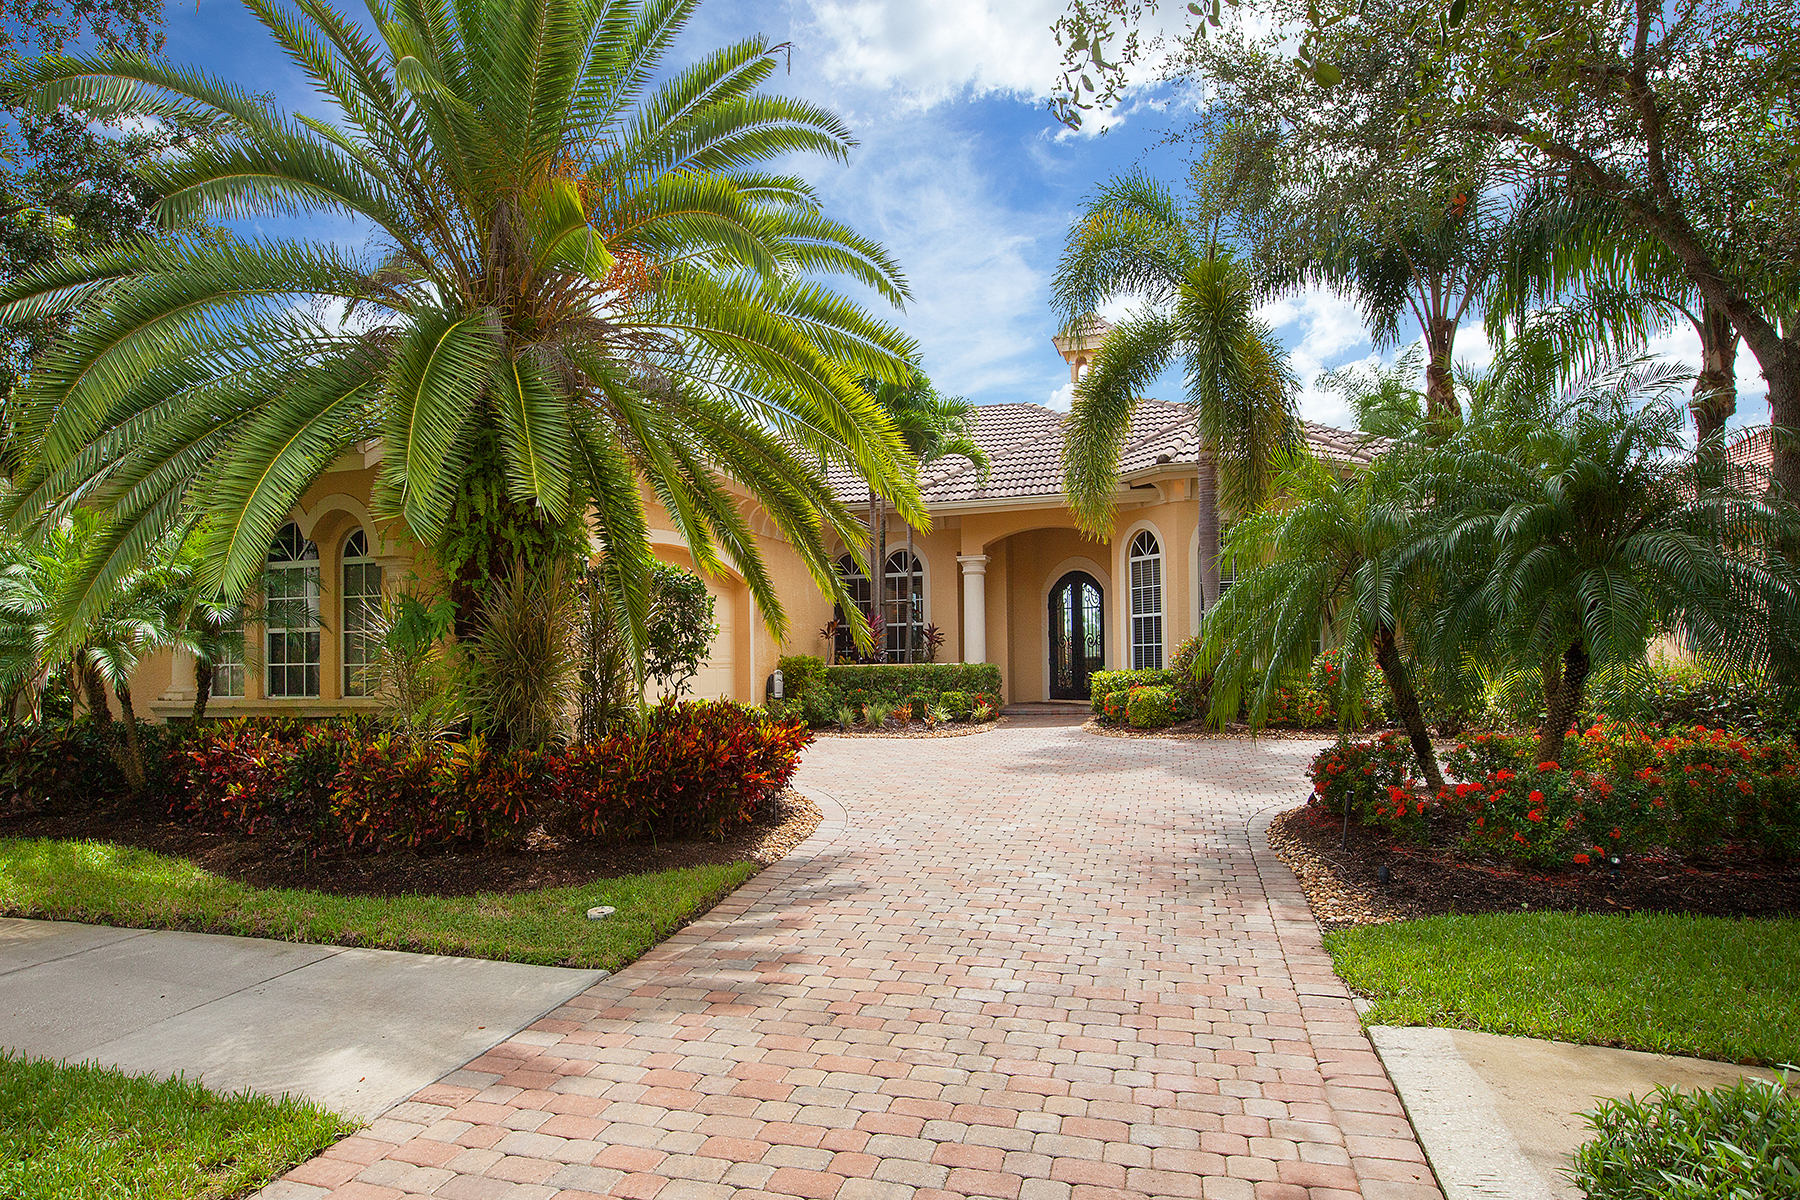 Villa per Vendita alle ore FIDDLER'S CREEK - MULBERRY ROW 7646 Mulberry Ln Naples, Florida, 34114 Stati Uniti